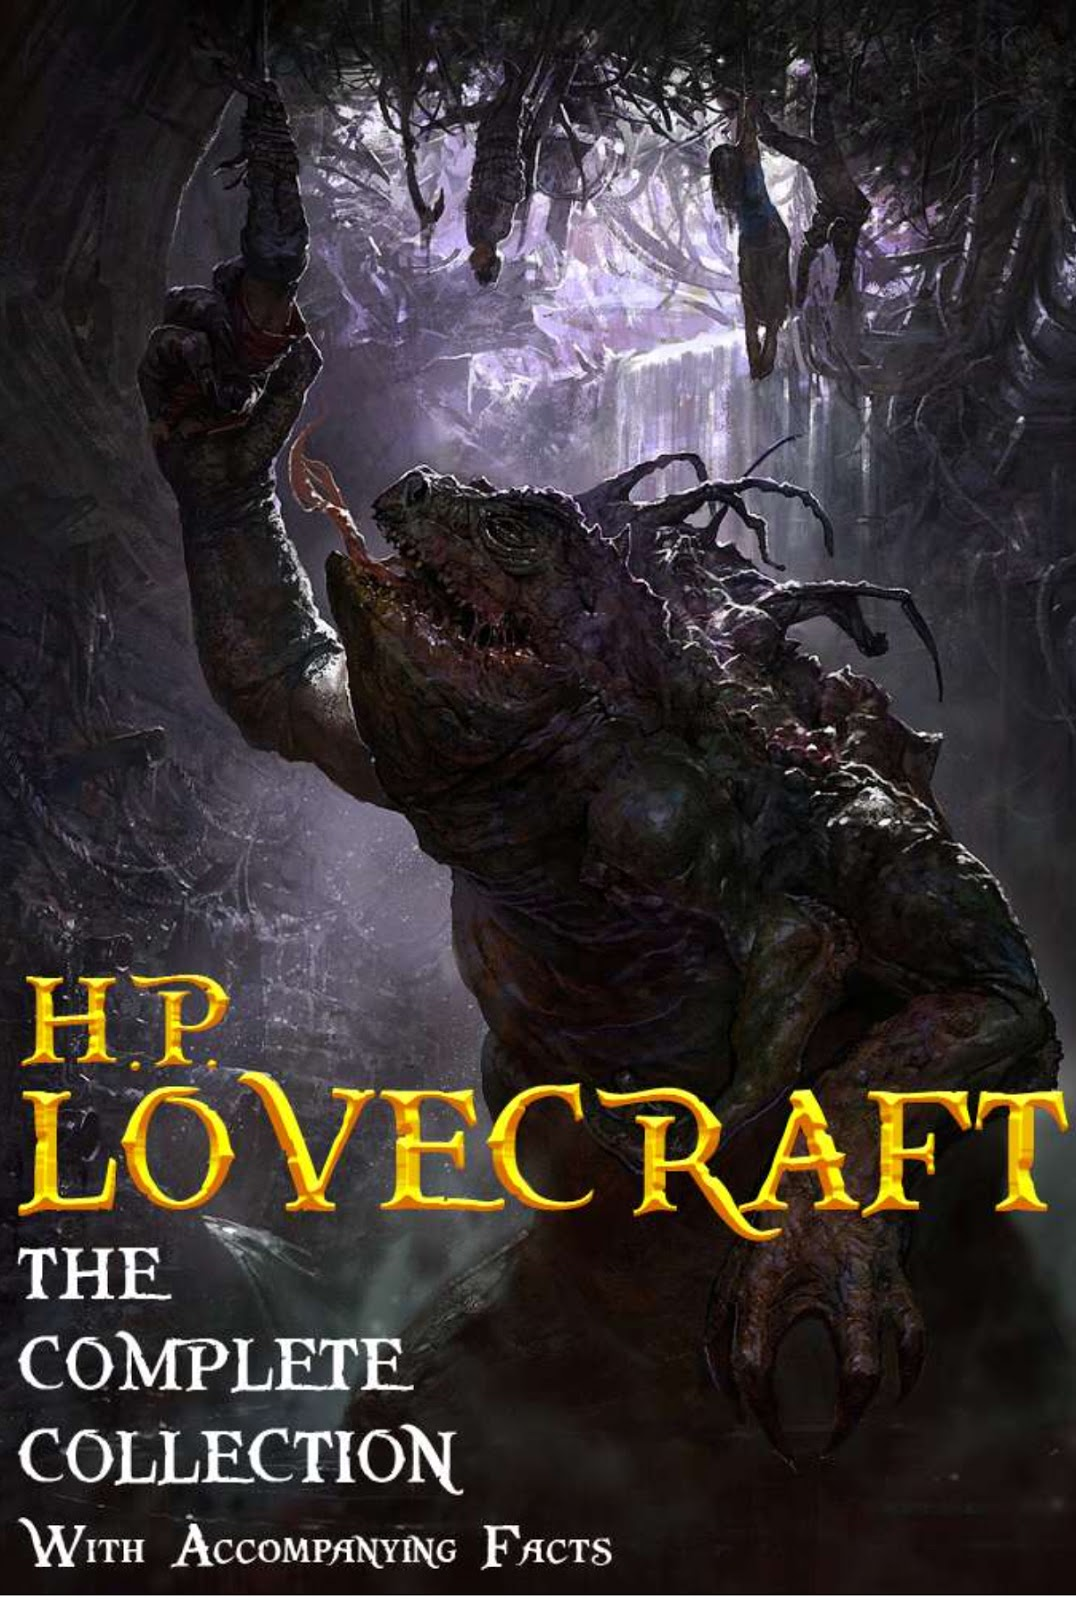 short story the outsider by h p lovecraft by any other nerd the narrator explains that he had lived in a strange castle for as long as he can remember and lived by himself the castle is surrounded by a dark forest